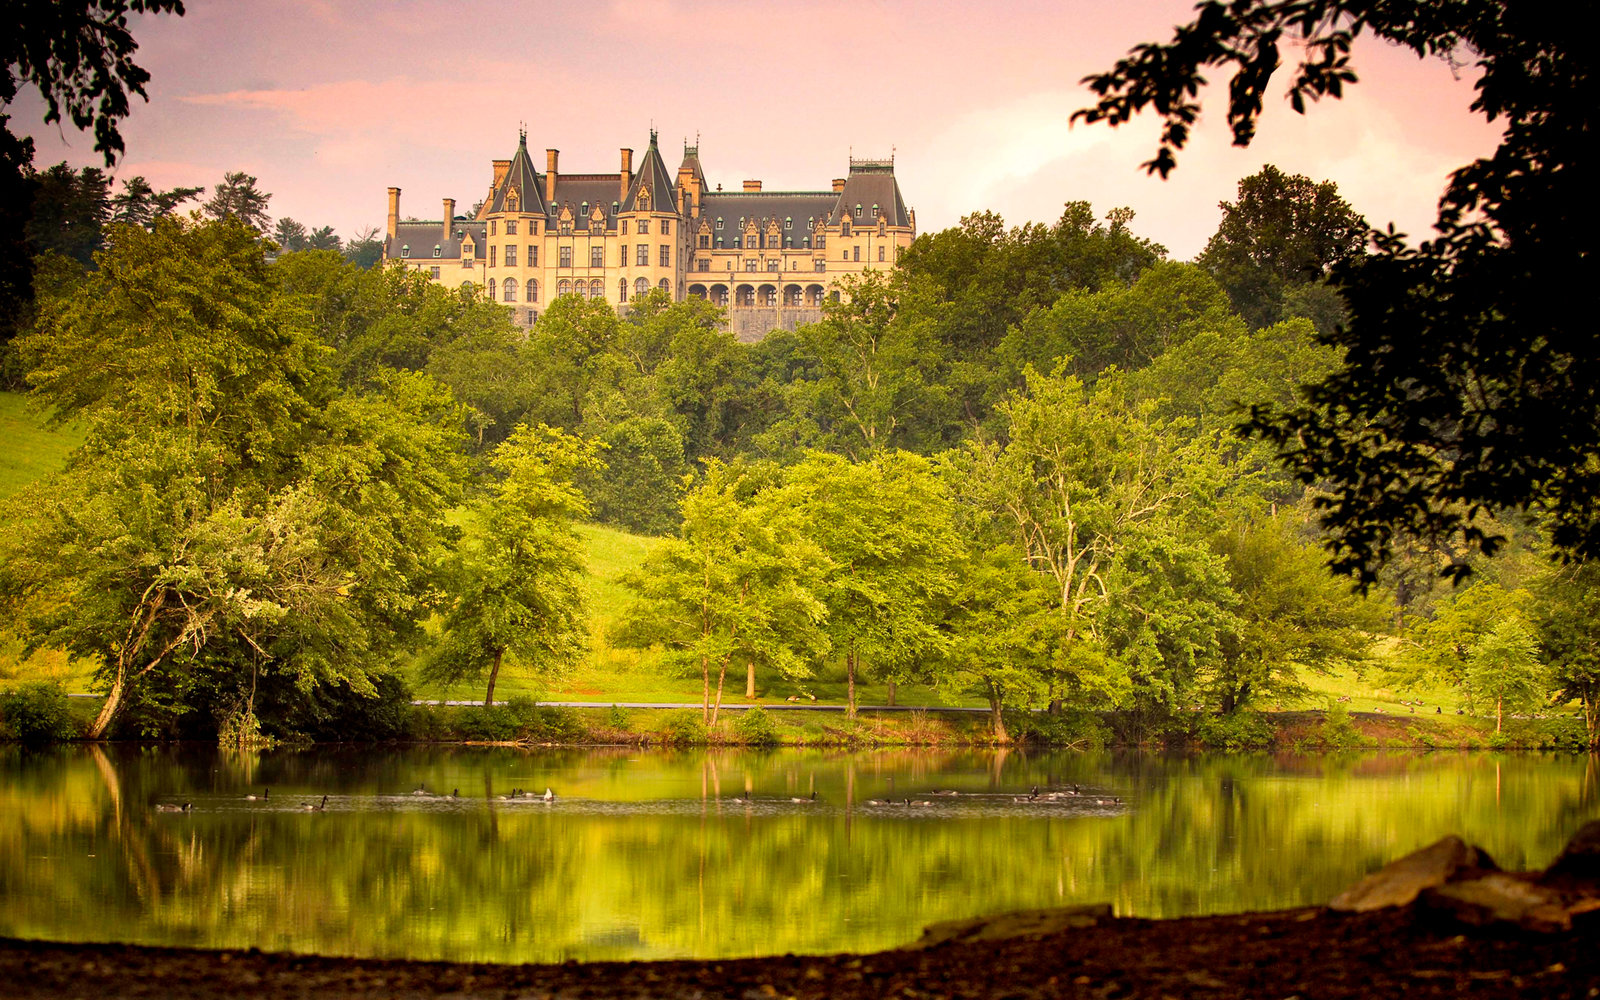 Iphone X Default Wallpaper The History And Charm Of North Carolina S Biltmore Estate